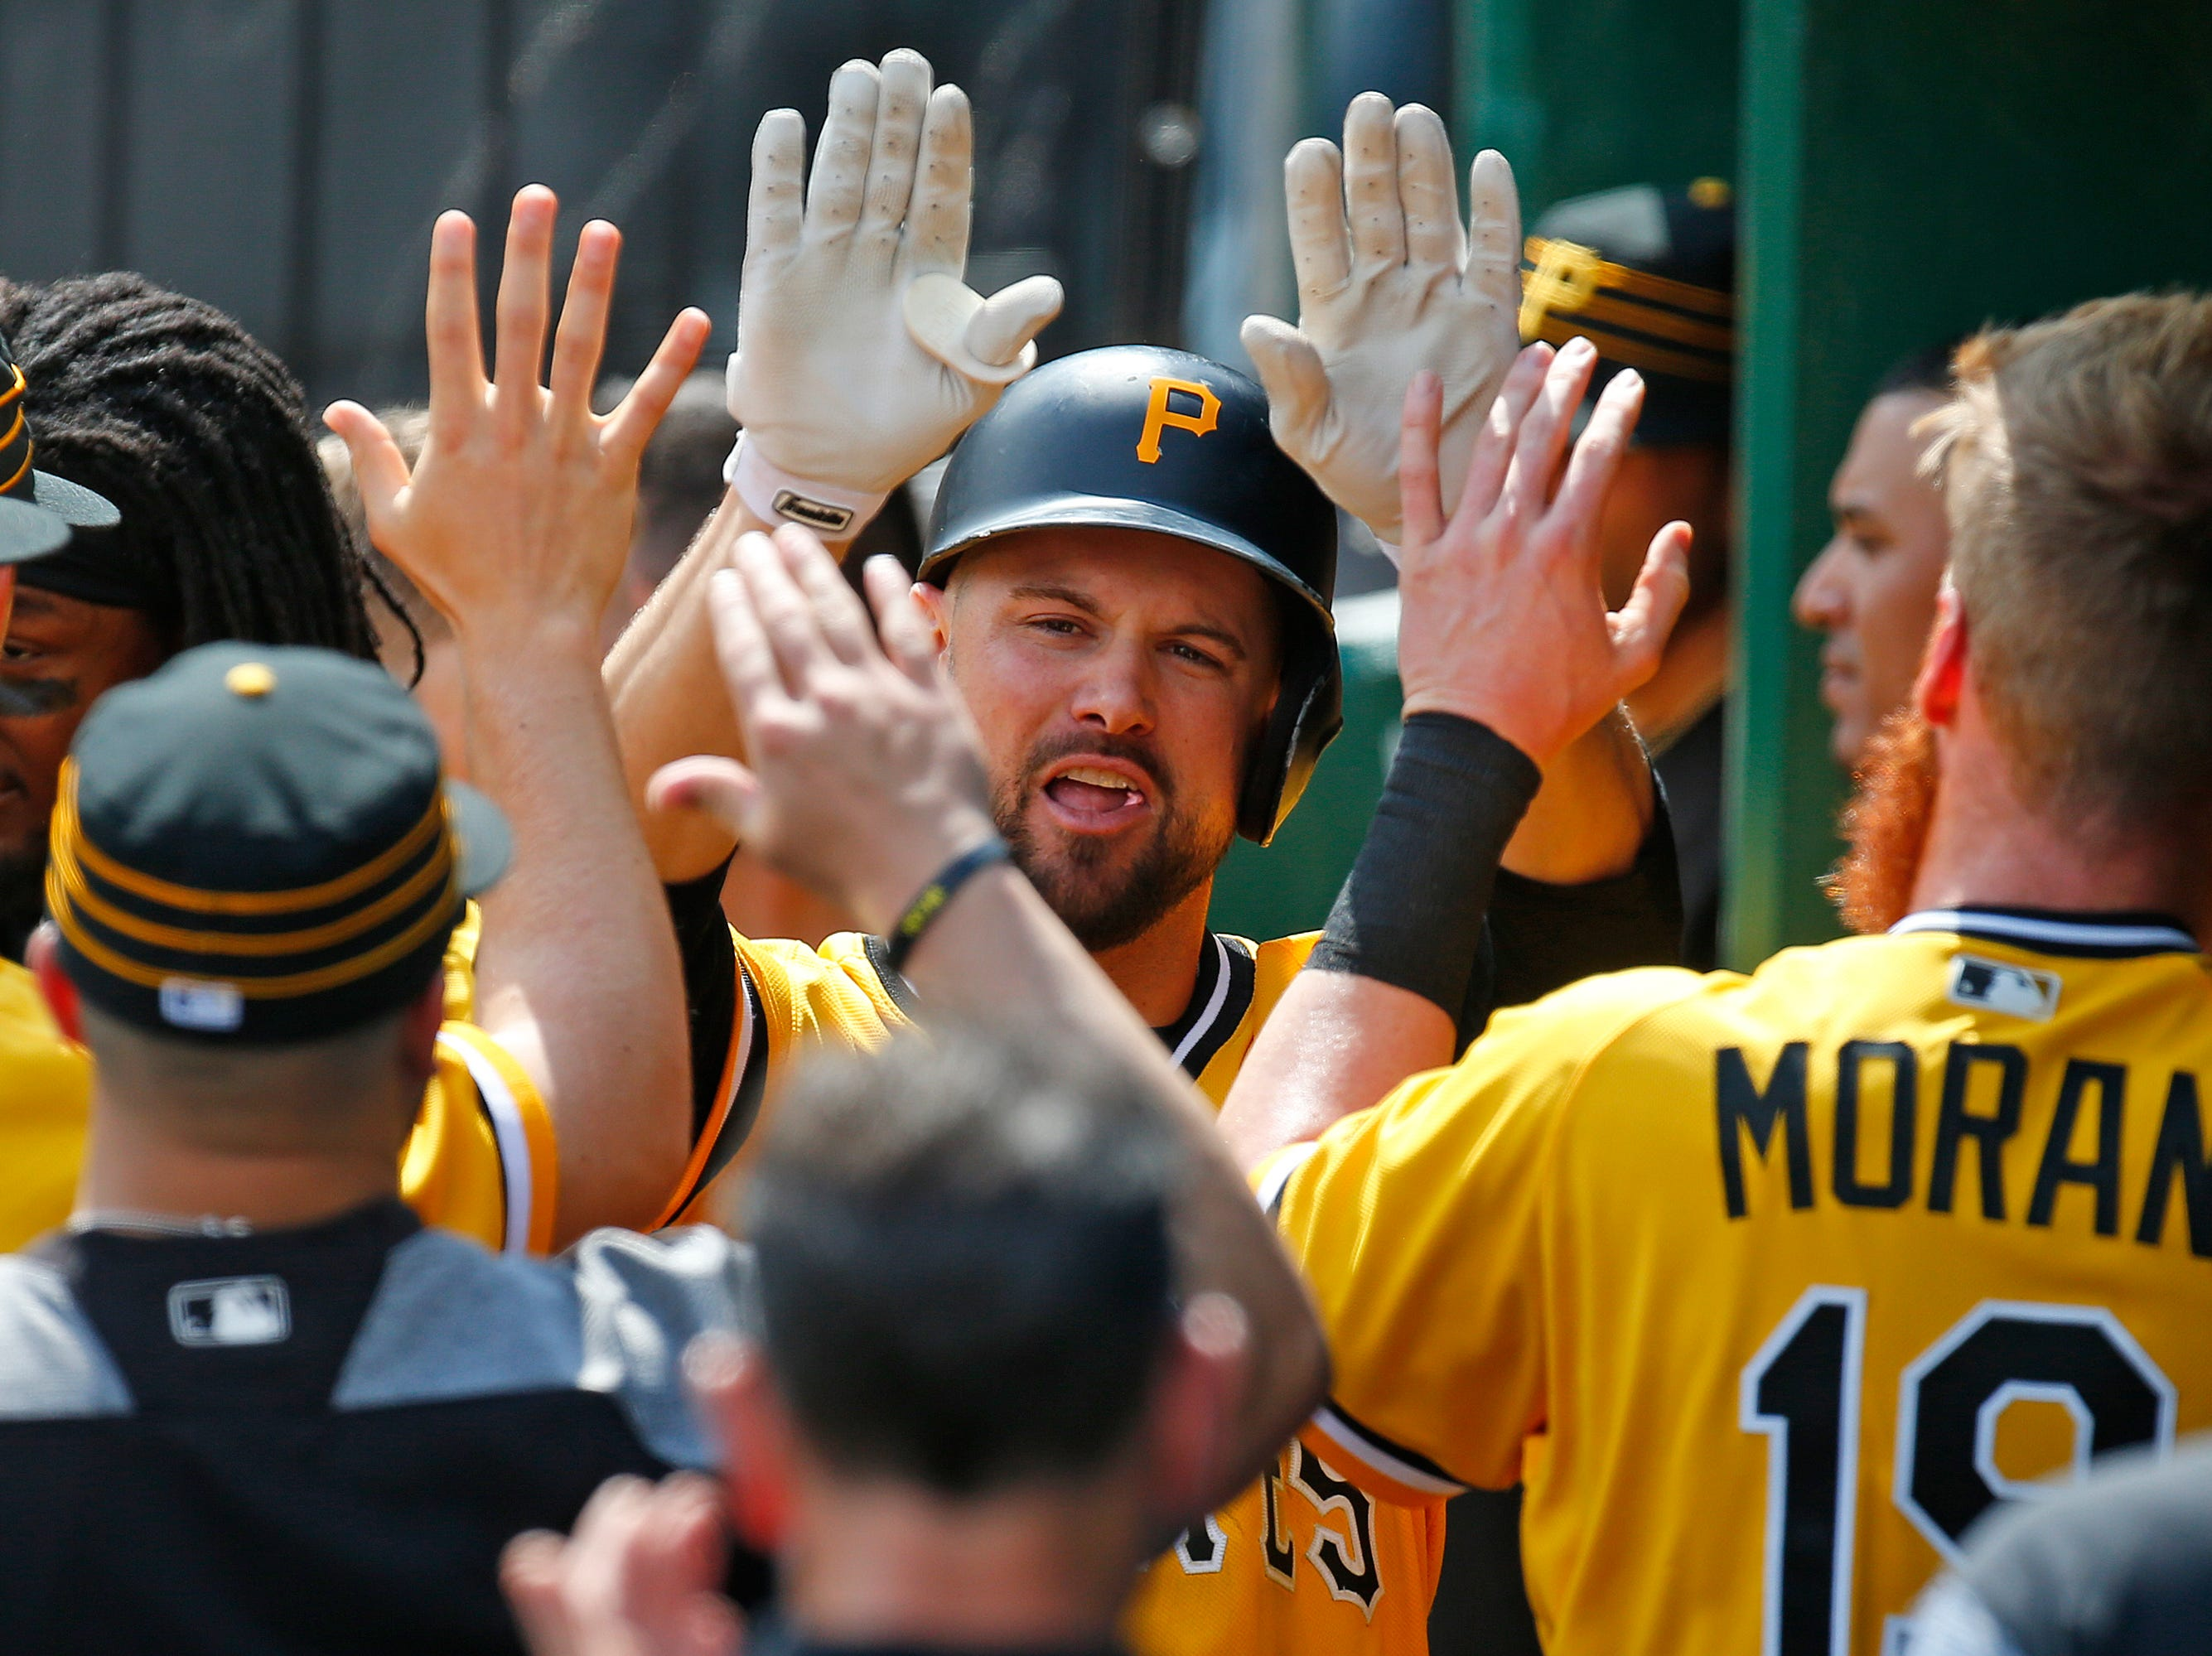 Jordy Mercer of the Pittsburgh Pirates celebrates after hitting a home run in the sixth inning against the San Diego Padres during the game at PNC Park on May 20, 2018 in Pittsburgh, Pennsylvania.